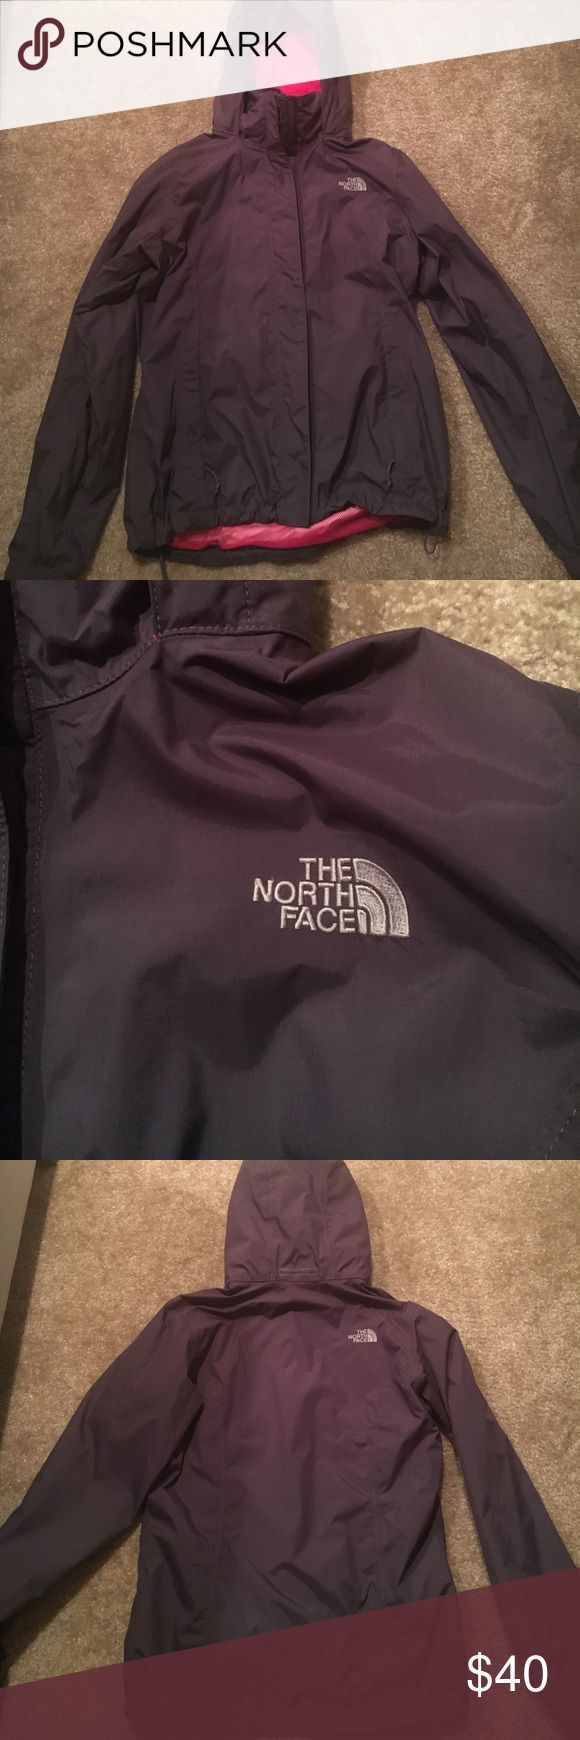 North Face Rain Jacket Purple and pink North Face rain jacket - women's size medium - several years old; still in great condition North Face Jackets & Coats